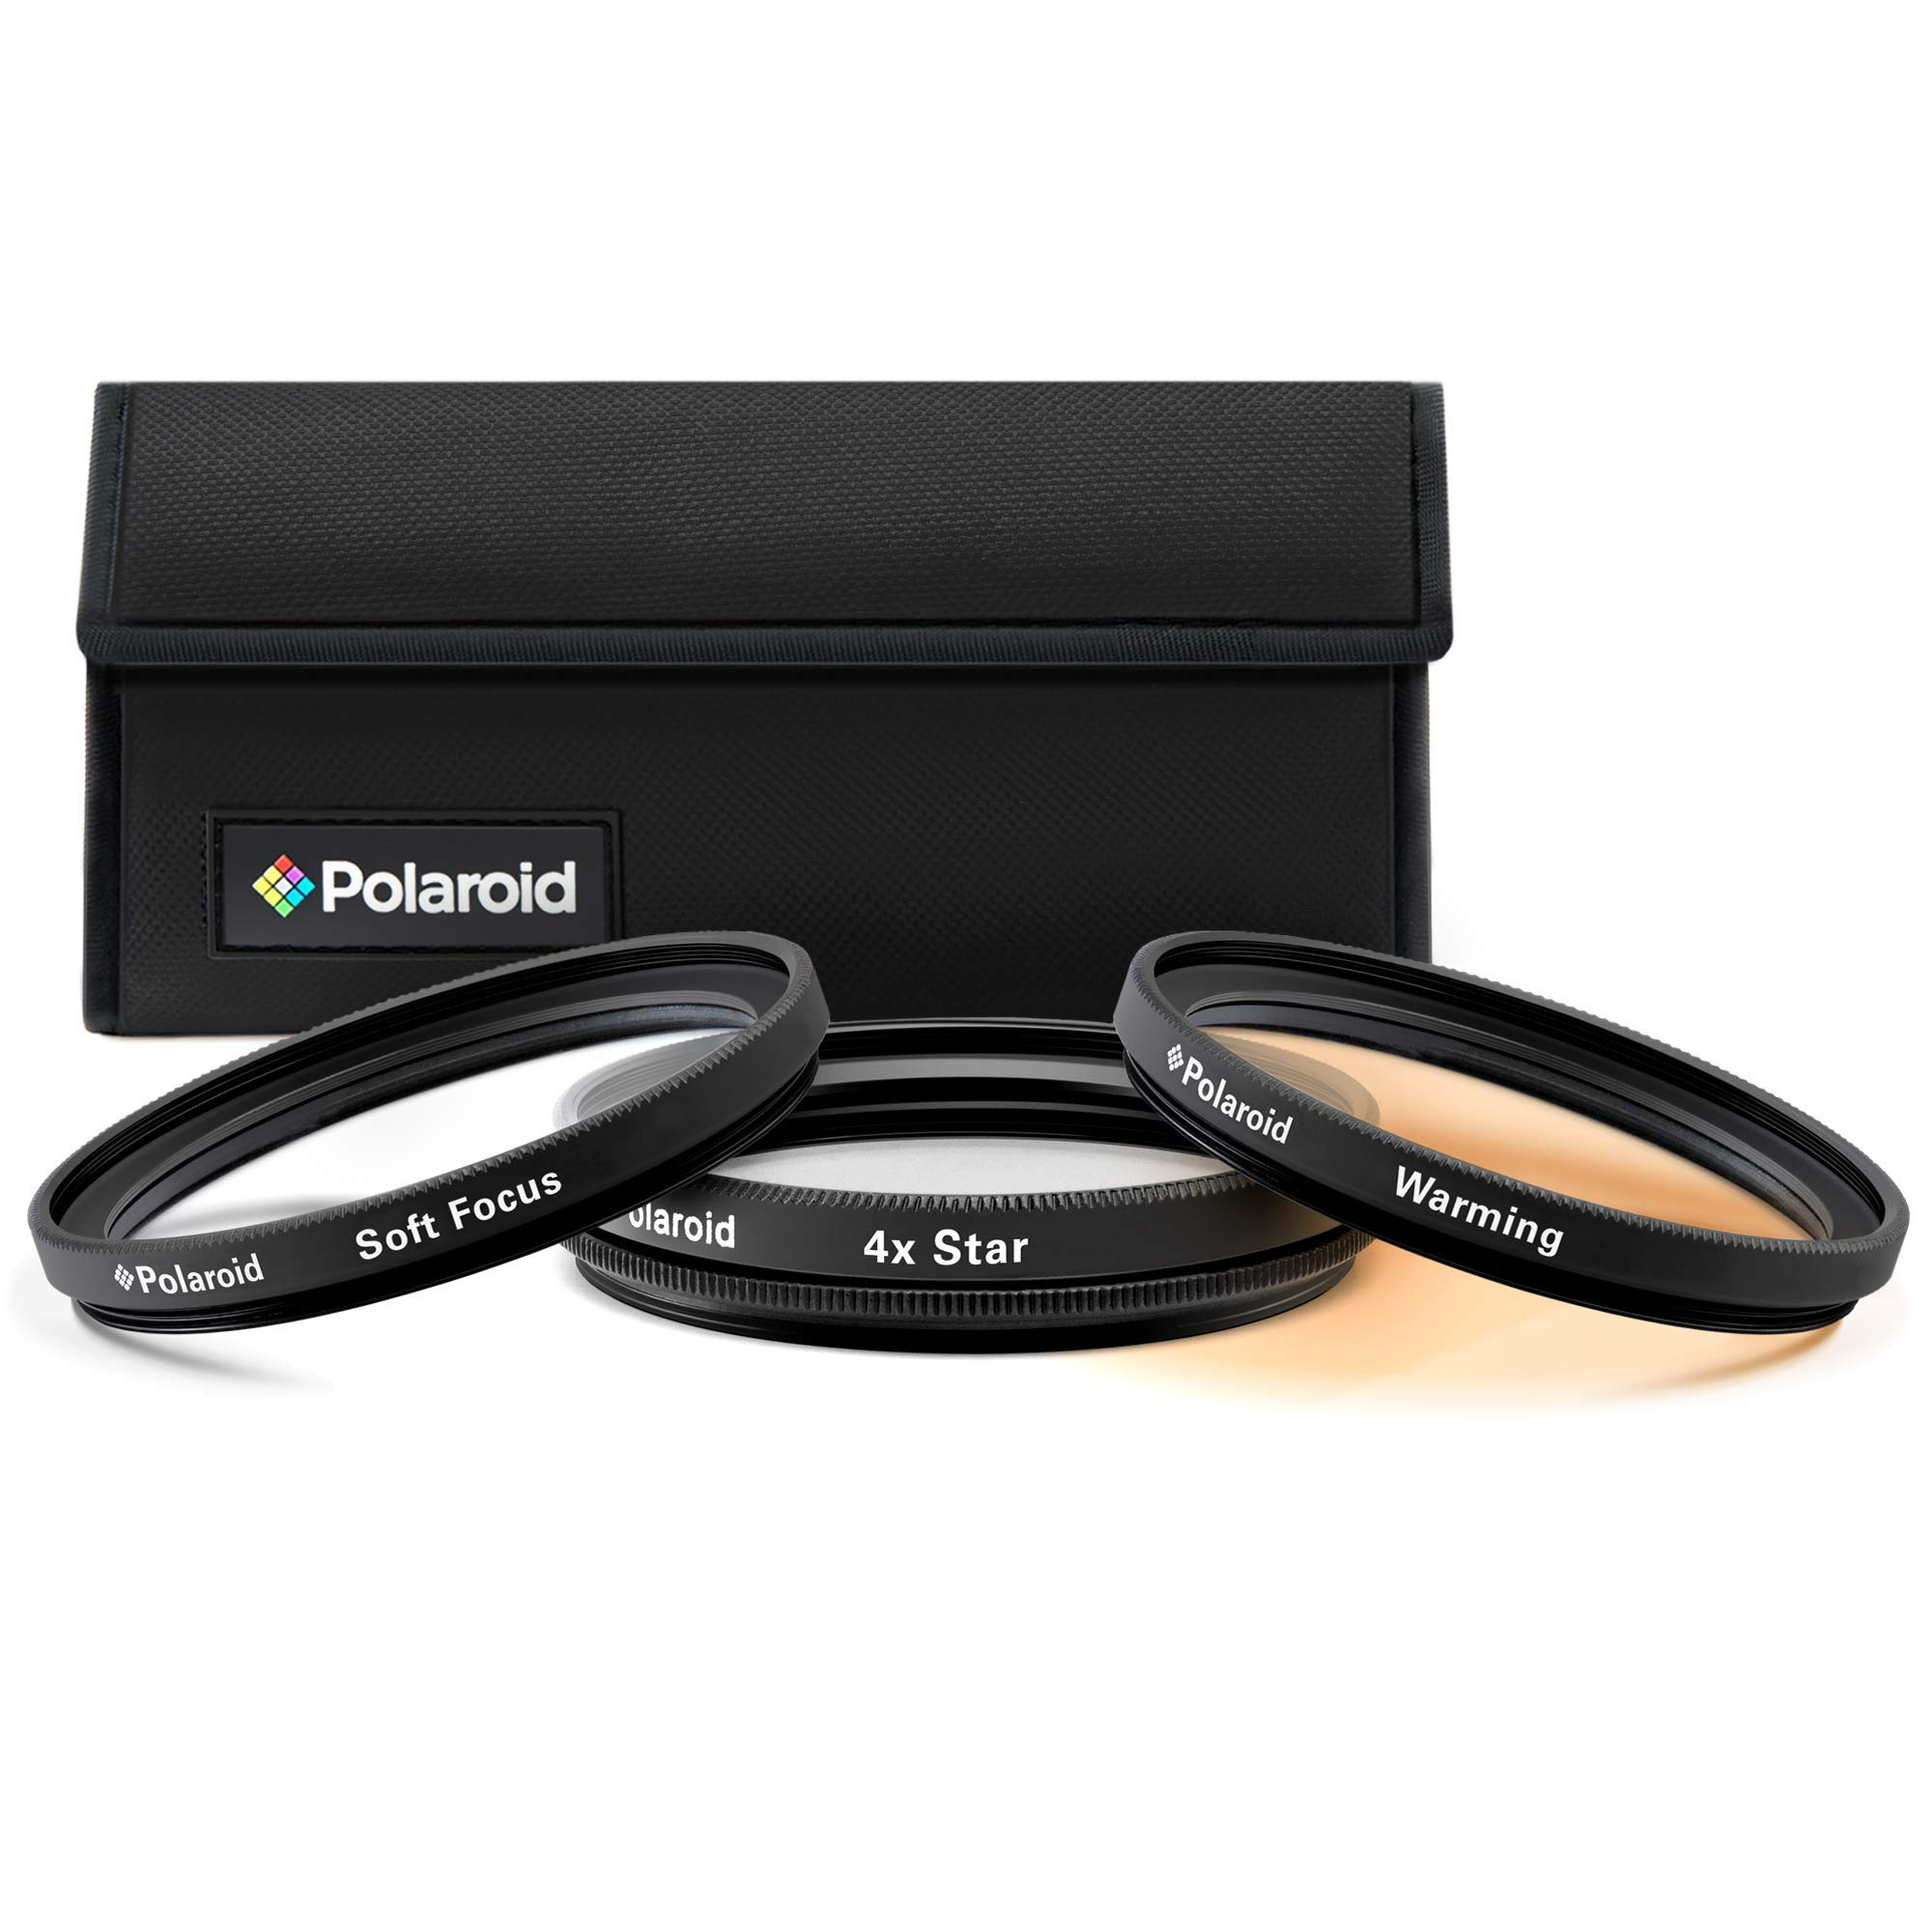 Polaroid Optics 77mm 3-Piece Special Effect Filter Kit Includes Soft Focus, 4 point Star Effect, Warming W/Nylon Carry Case - Compatible w/All Popular Camera Lens Models (Certified Refurbished)